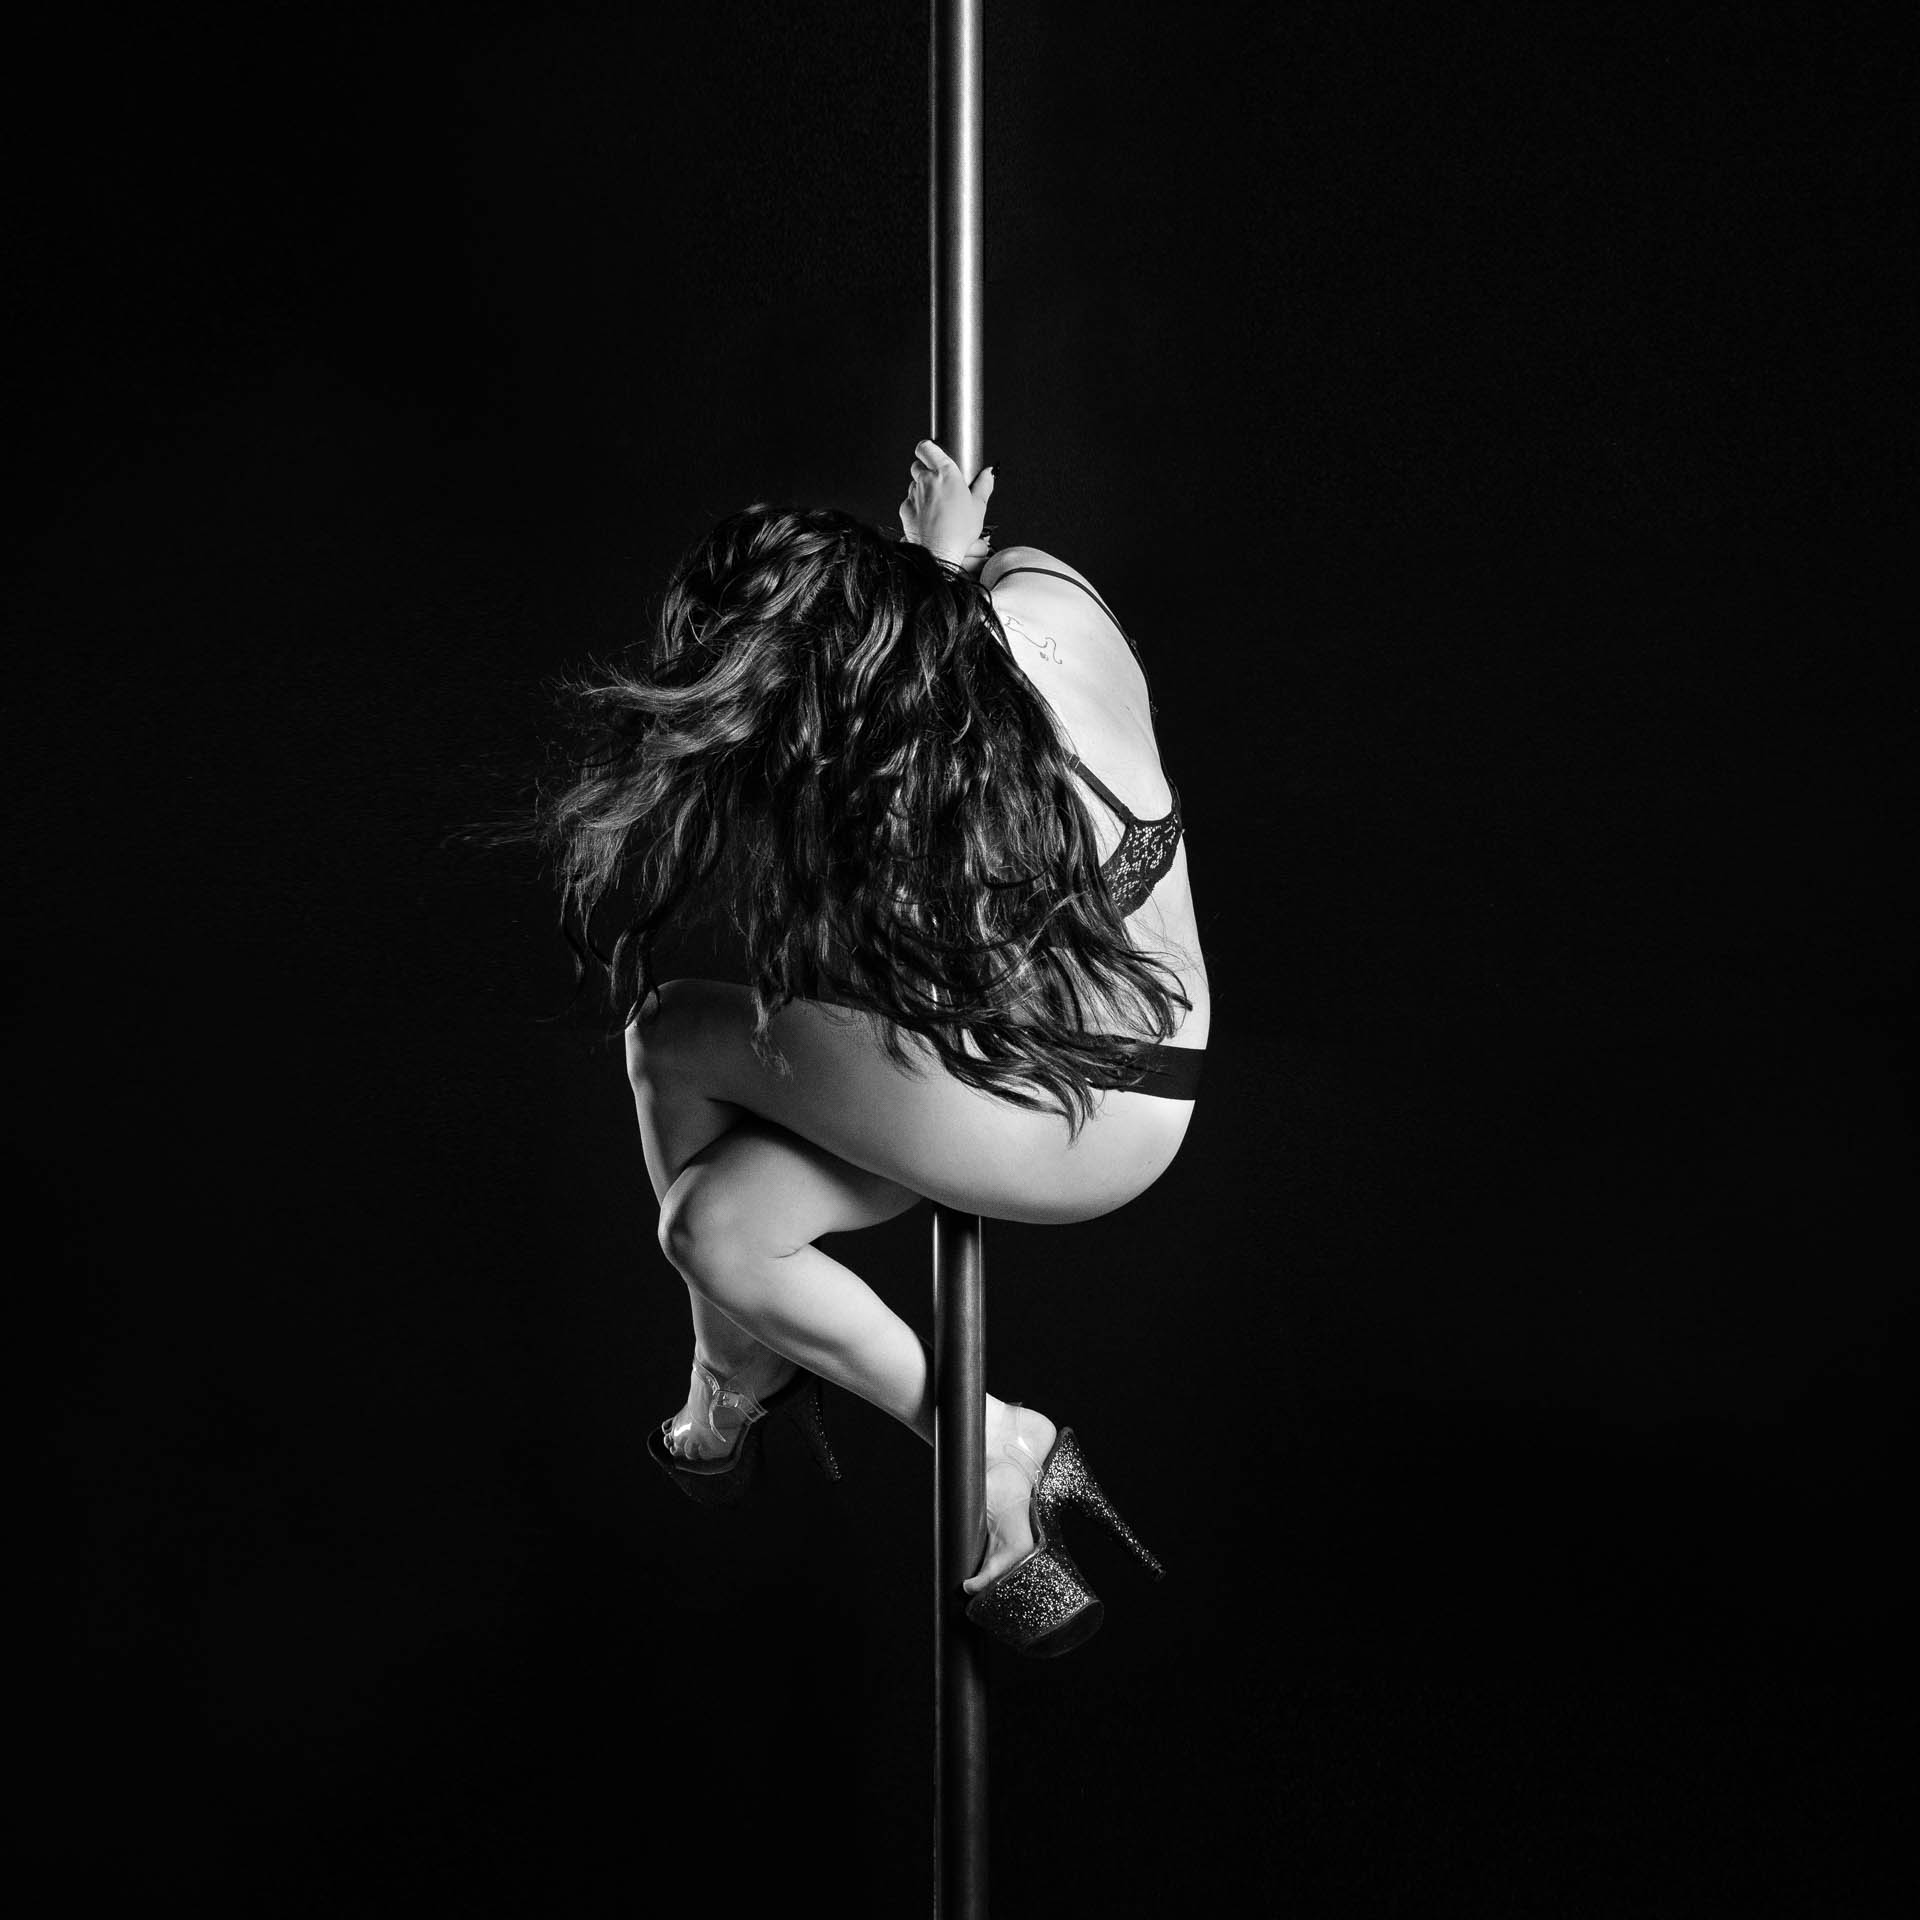 pole-dancer-artwork.JPG